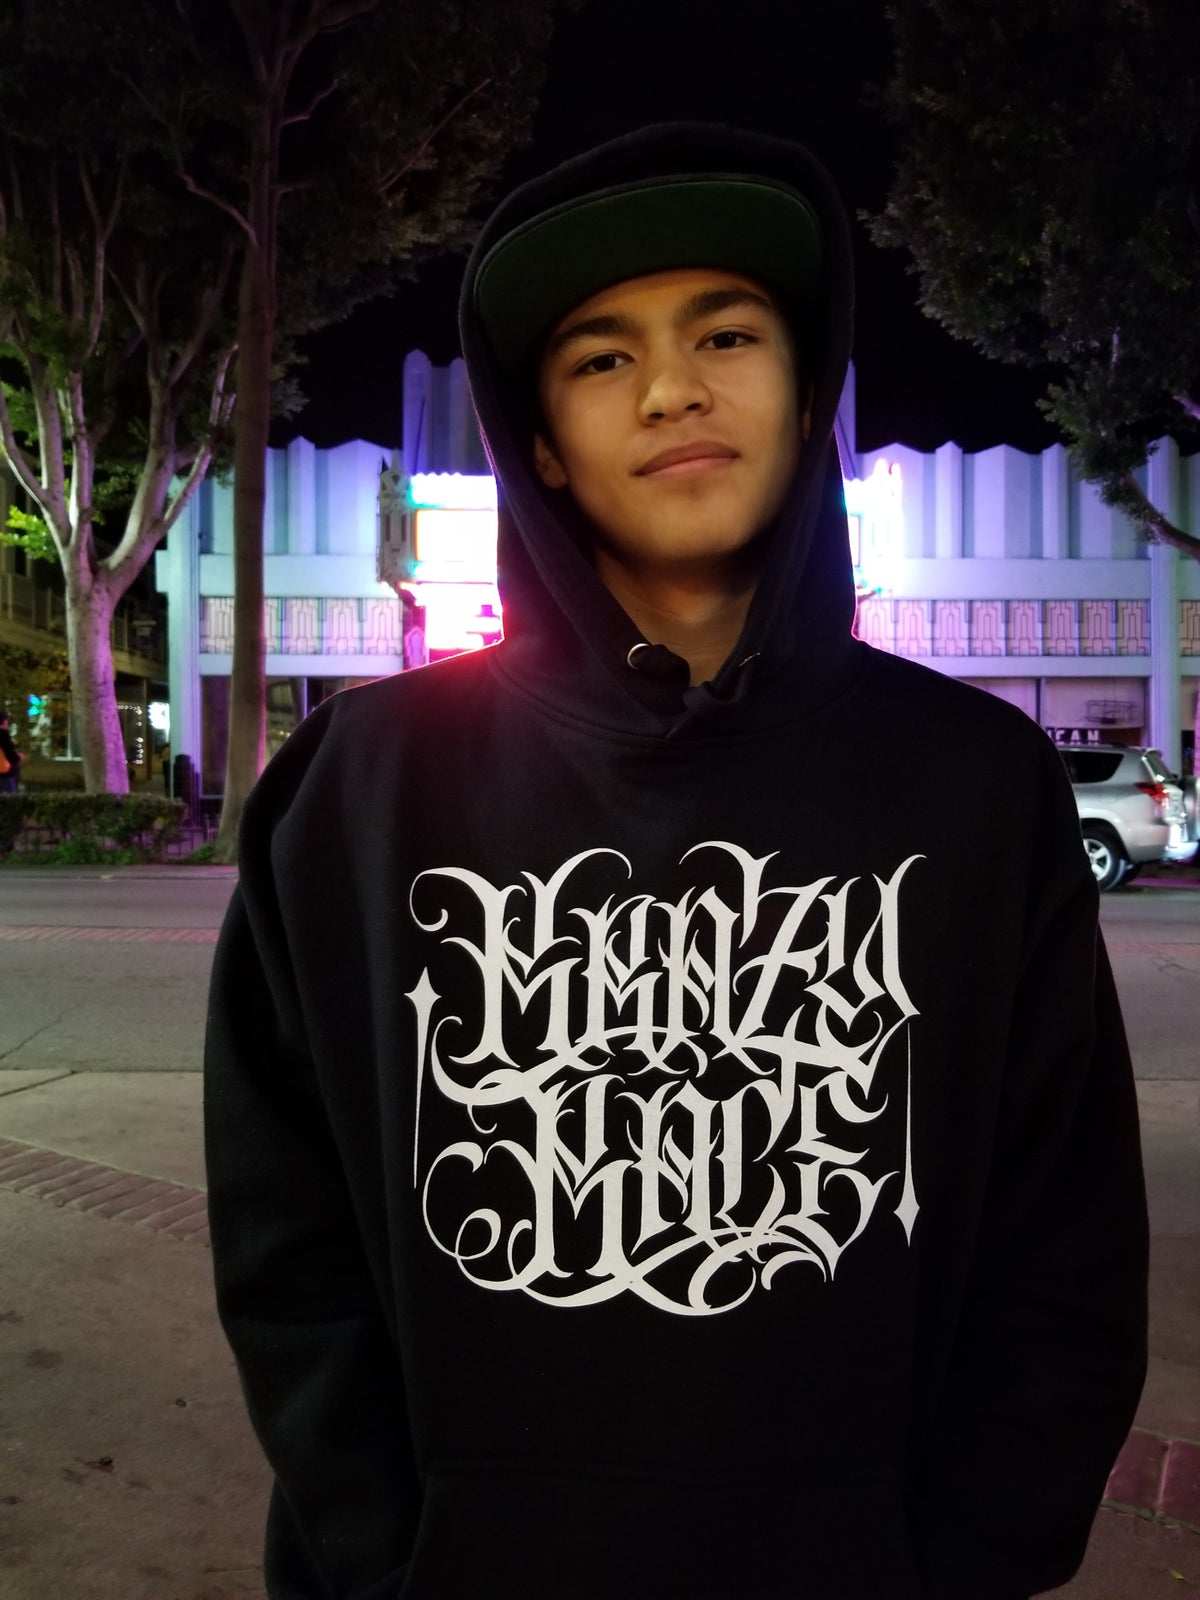 Image of New Limited Hoodie x New Krazy Race CD Bundle